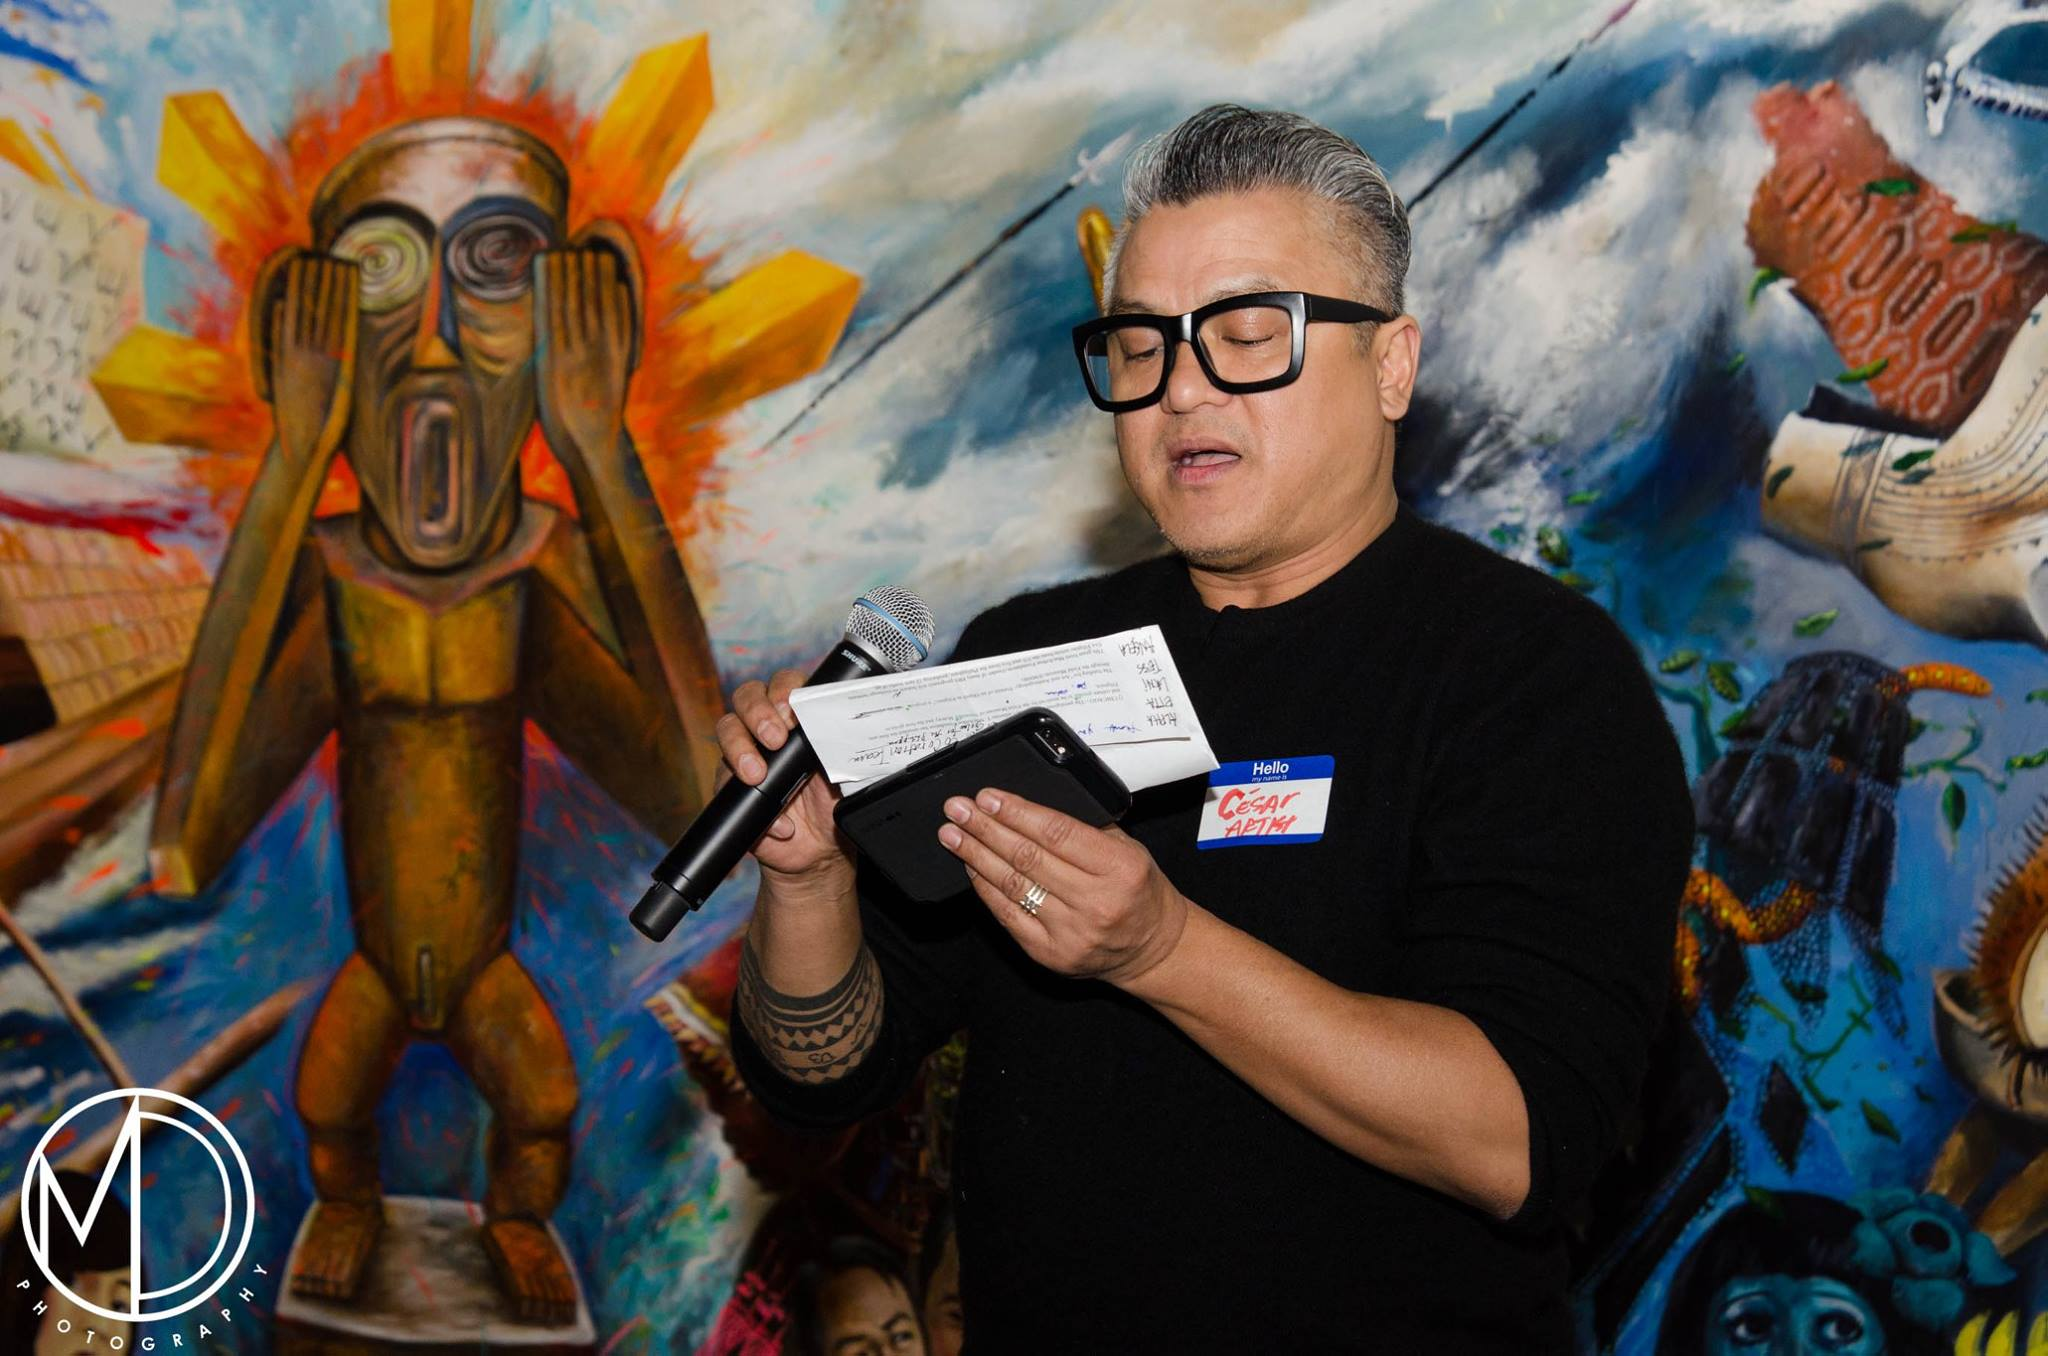 Local artist Cesar Conde presents to the audience about his contributions to the Art and Anthropology exhibit.